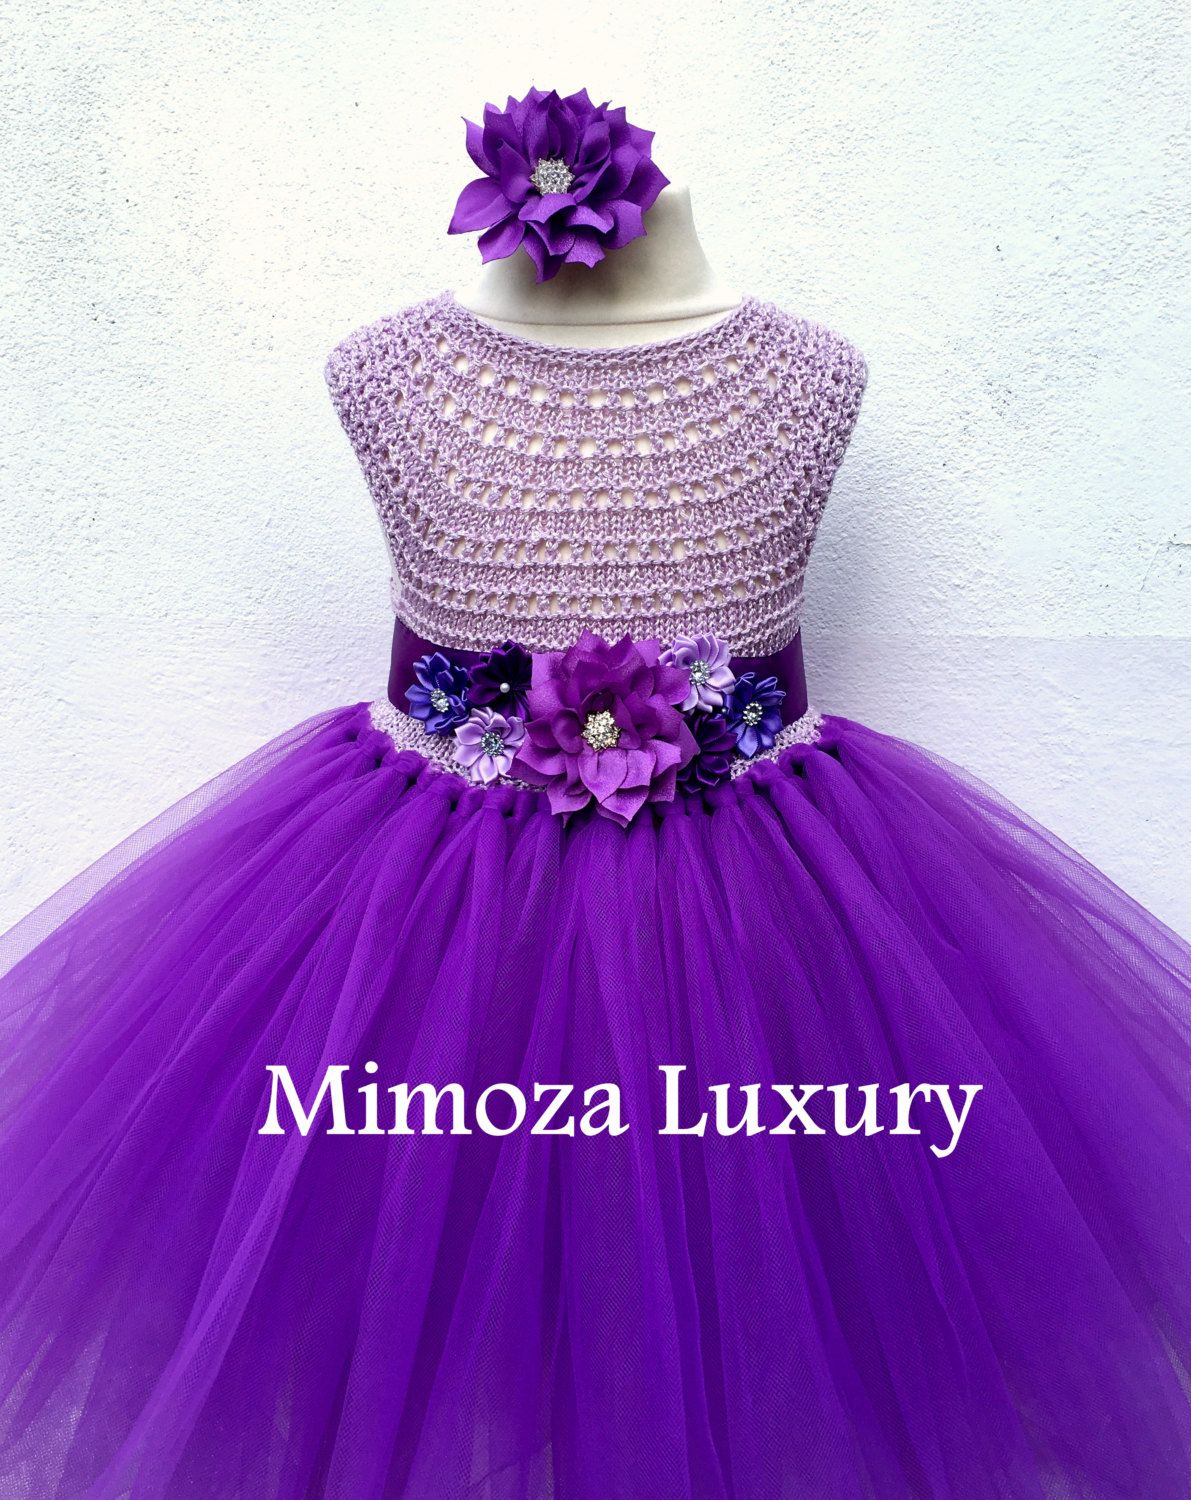 Lovely and Unique Handmade Dress, perfect for your special birthday ...